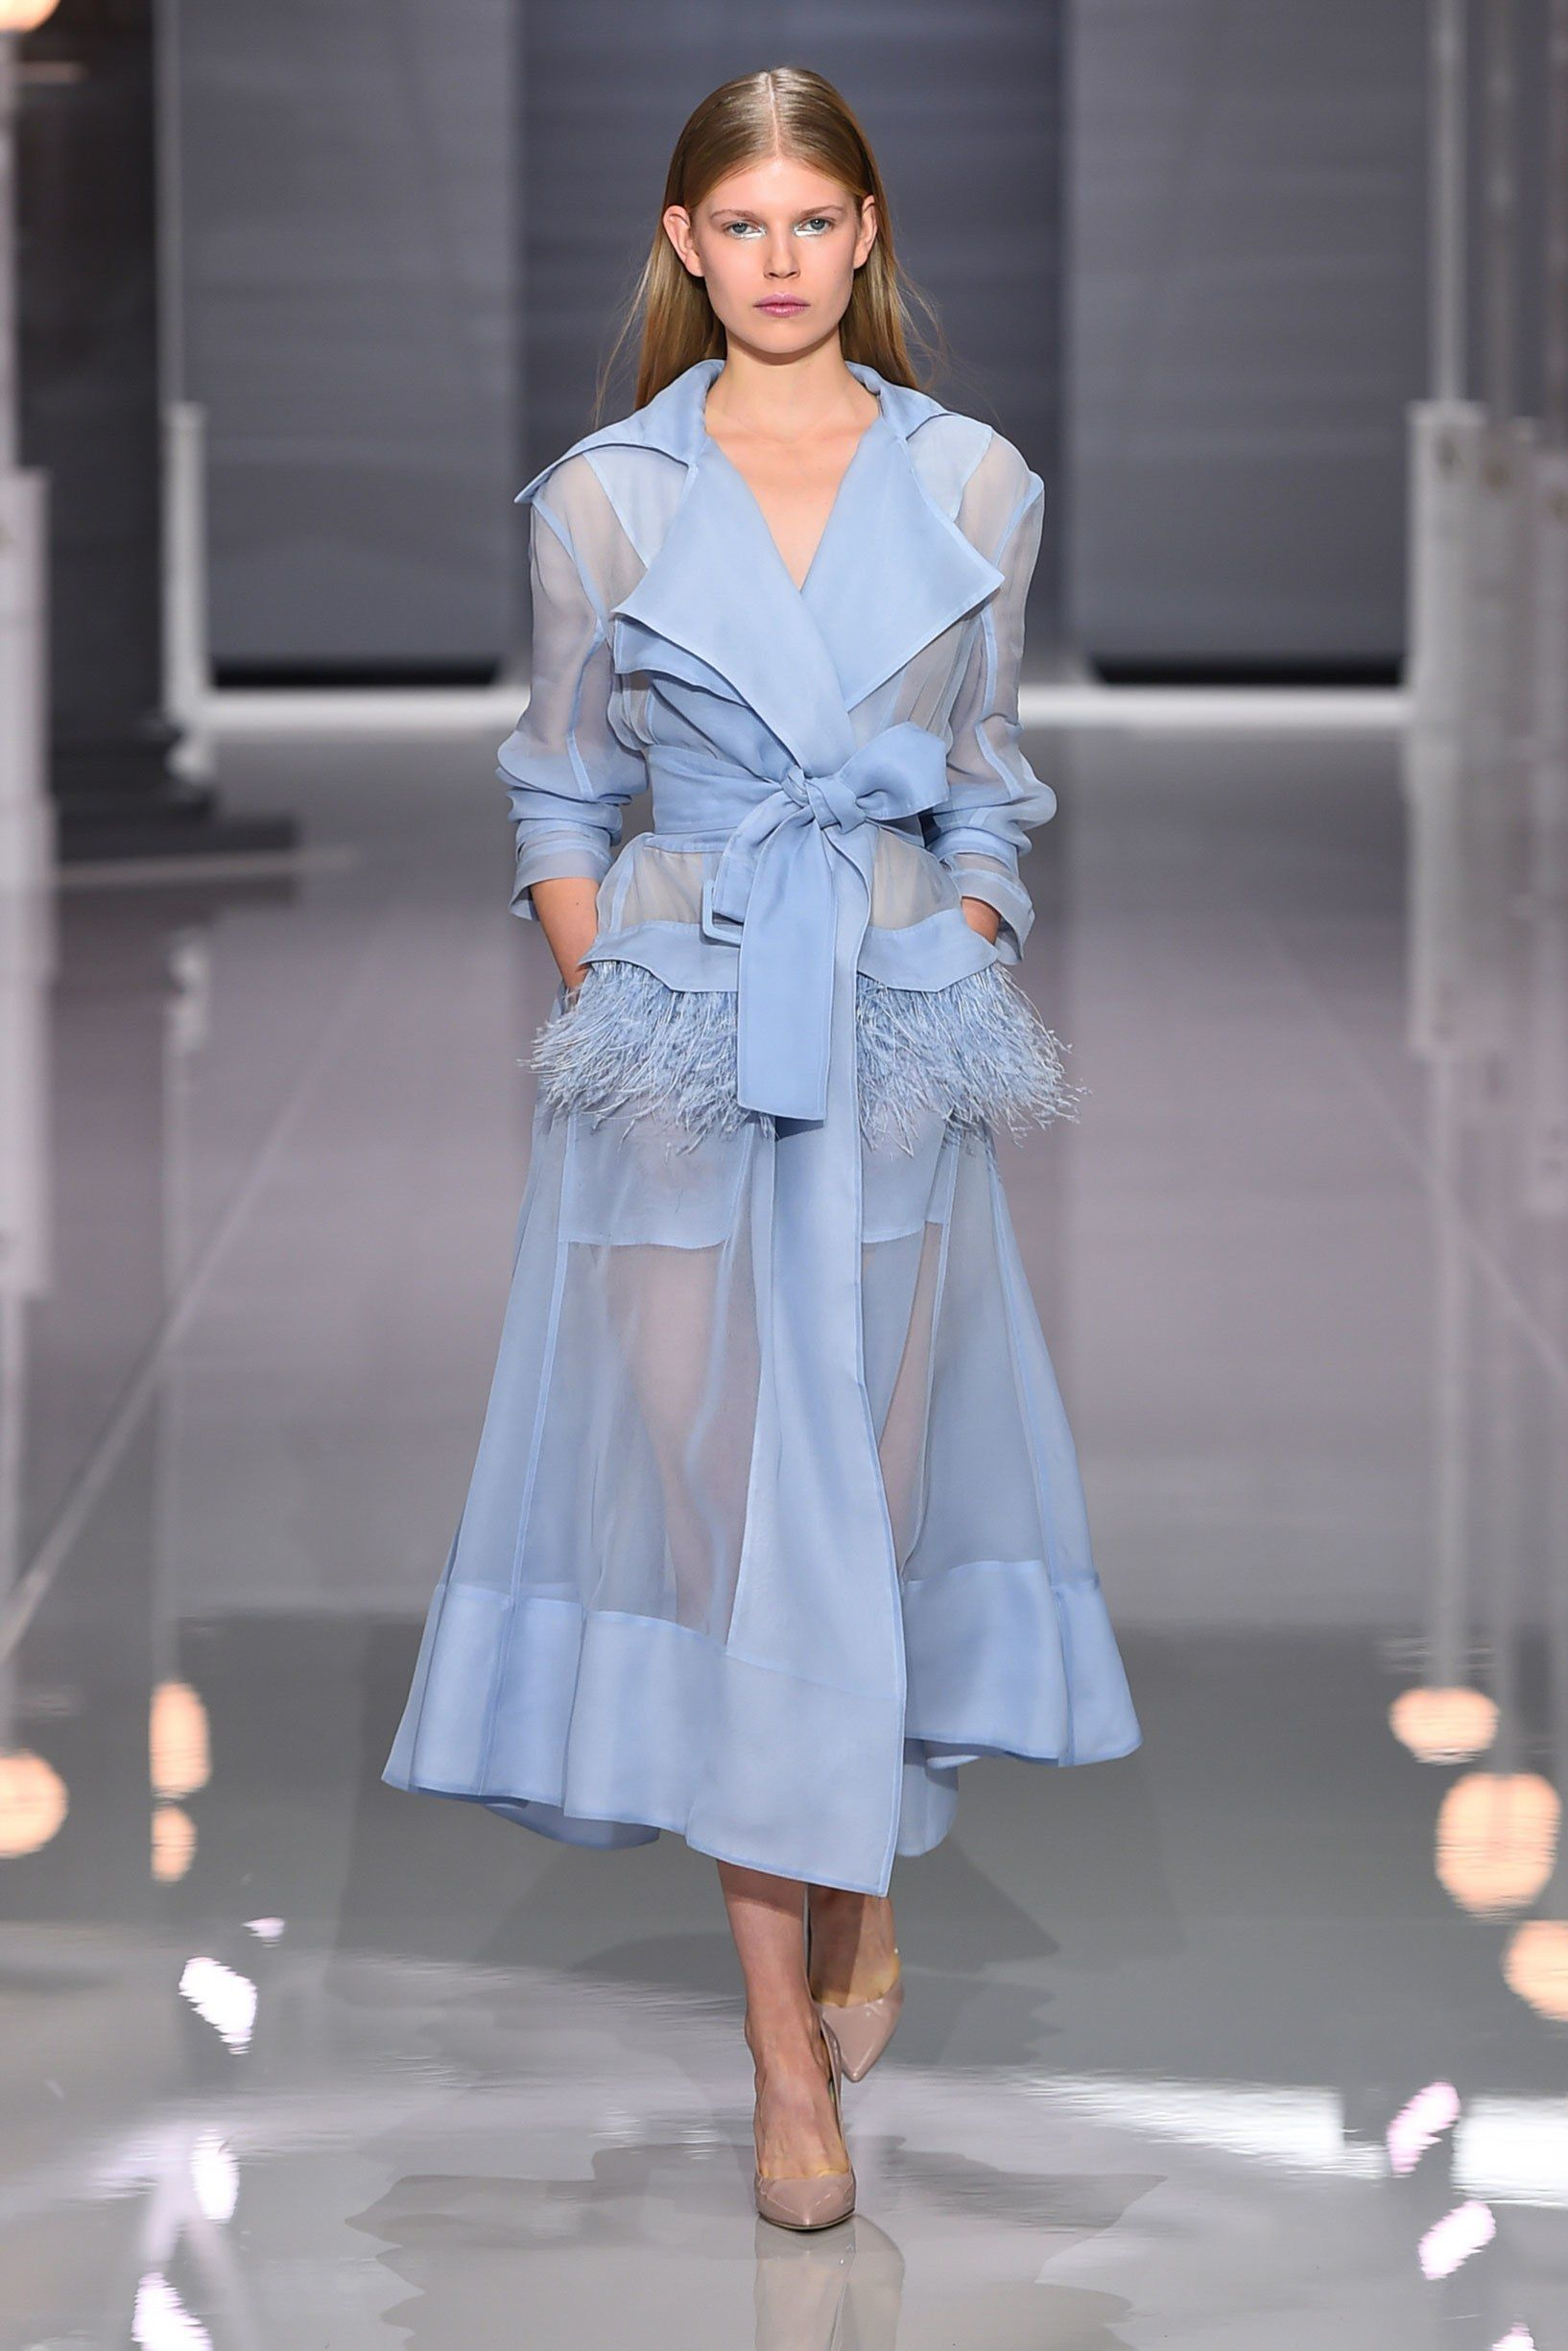 Ralph & Russo S/S 2018 - Ready to Wear | runway | Pinterest | Spring ...